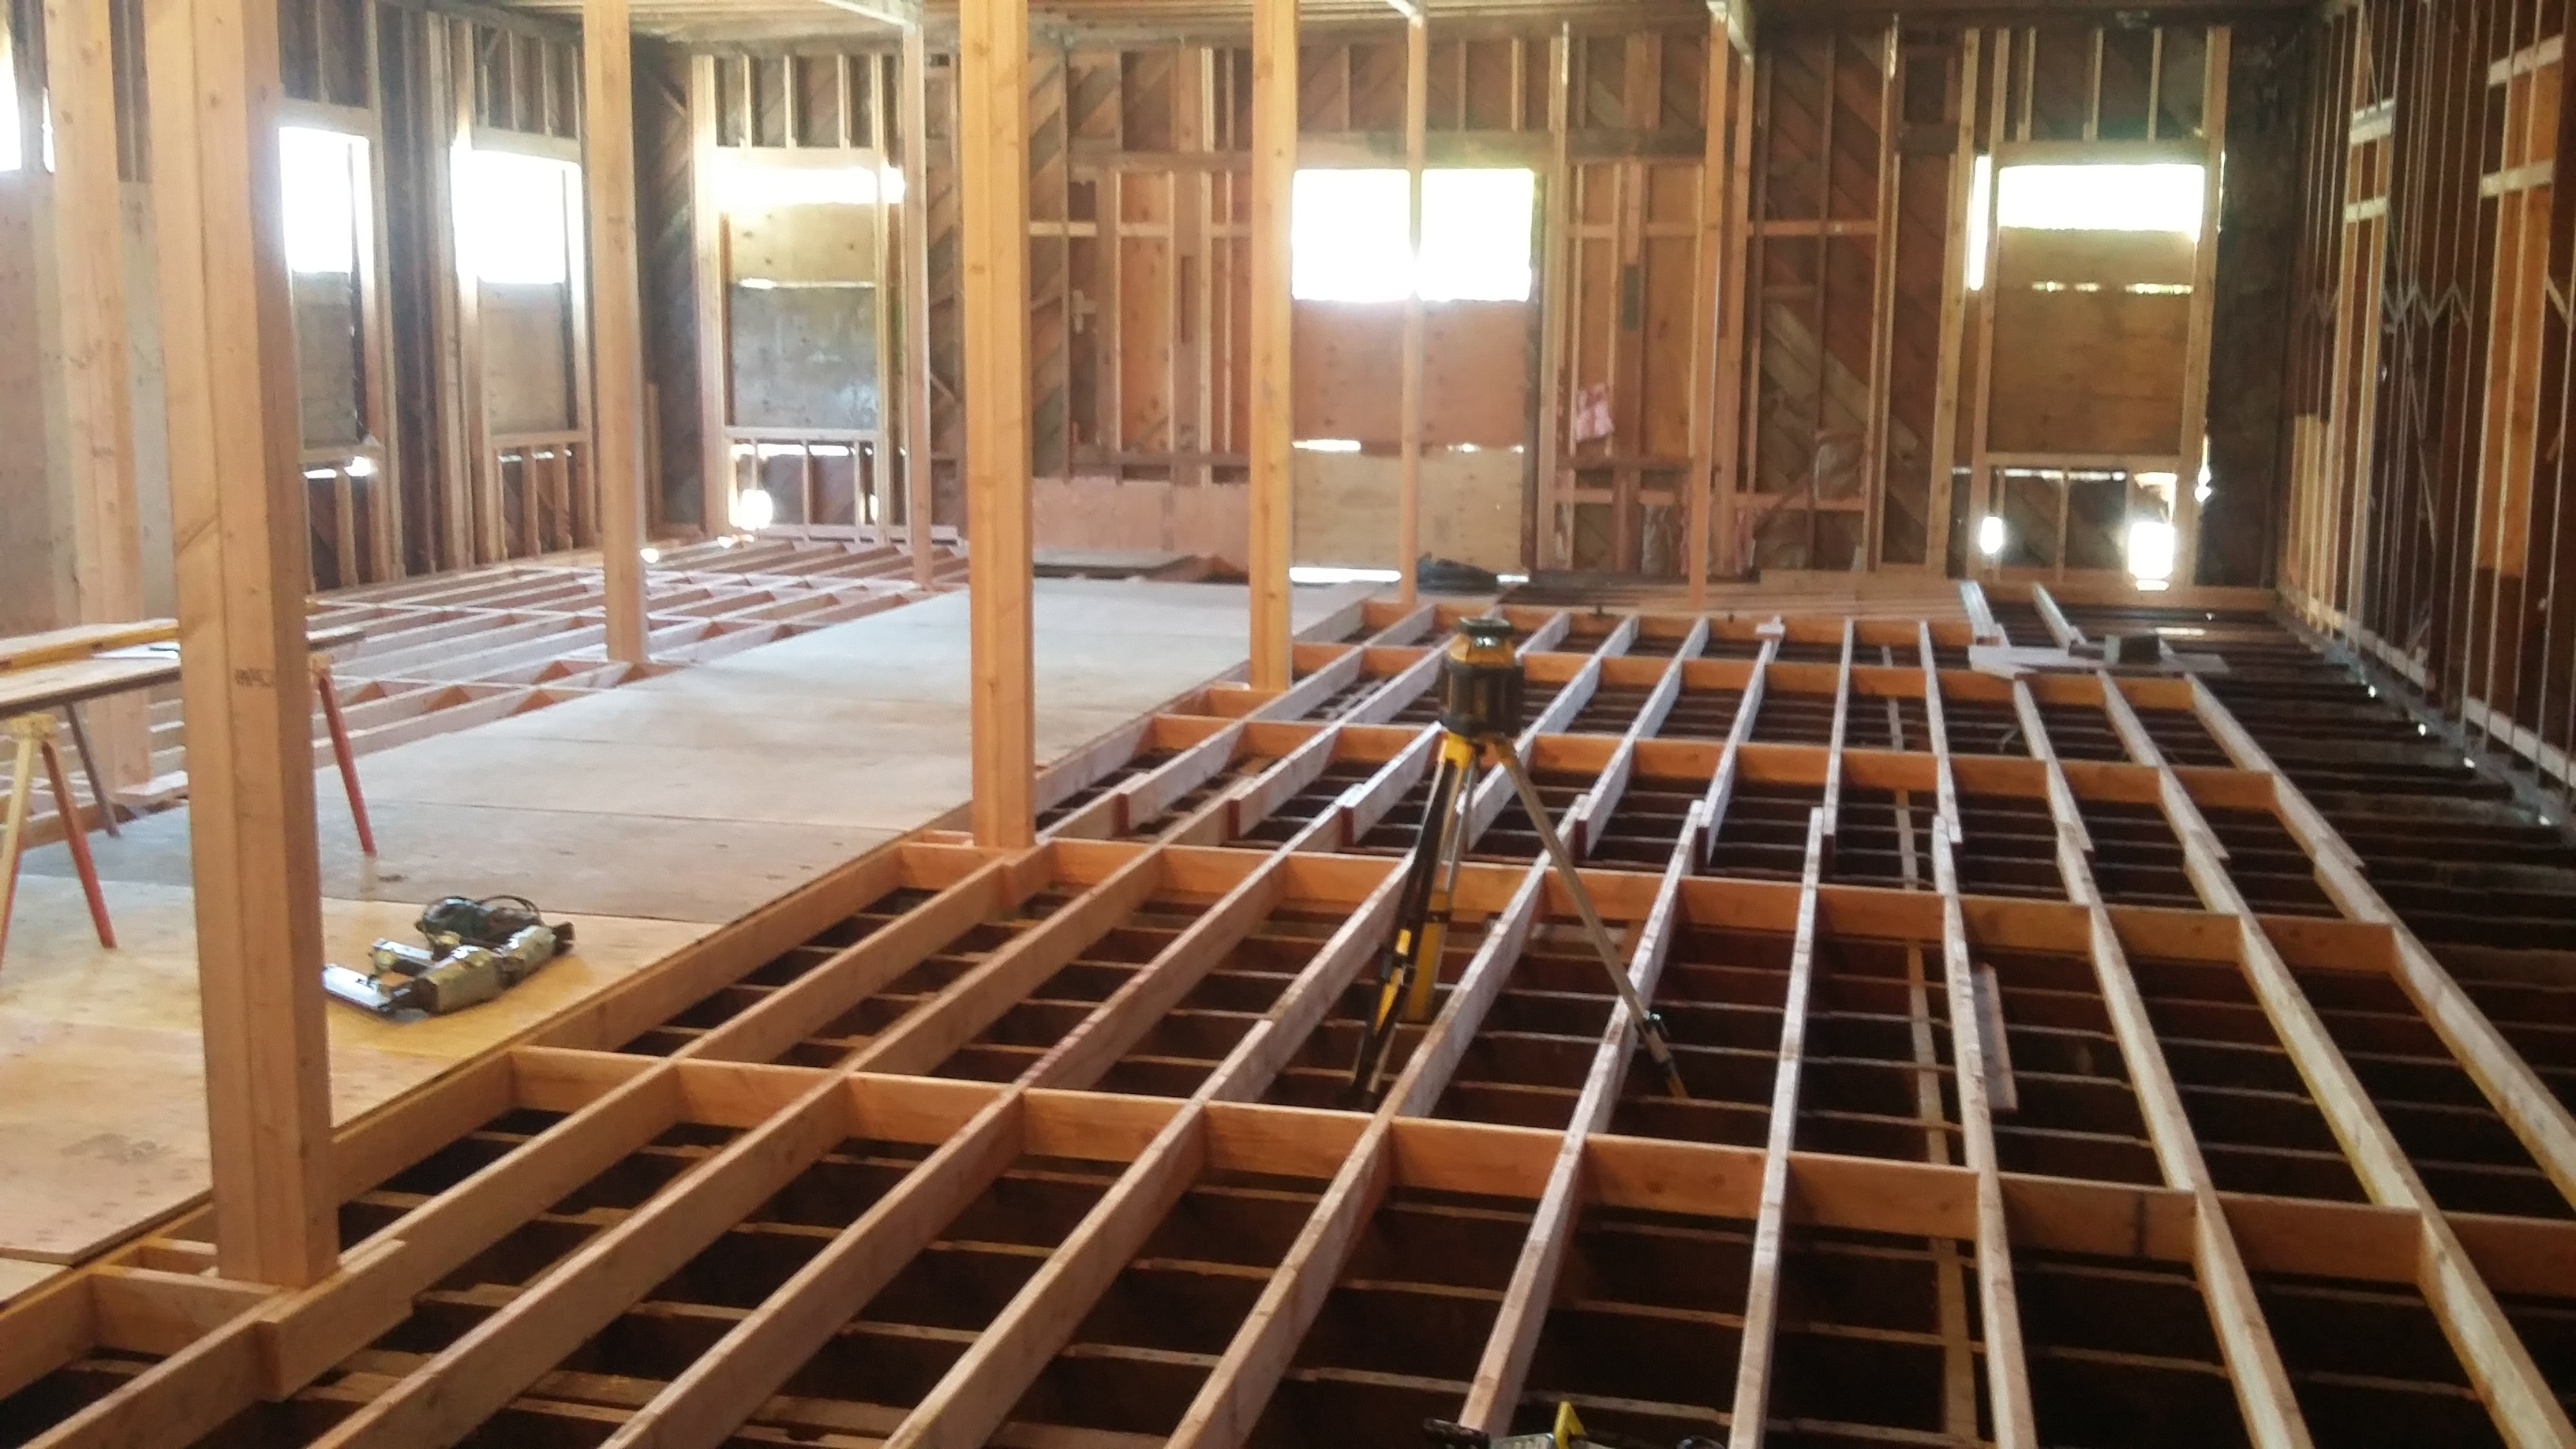 Building restoration, floor framing